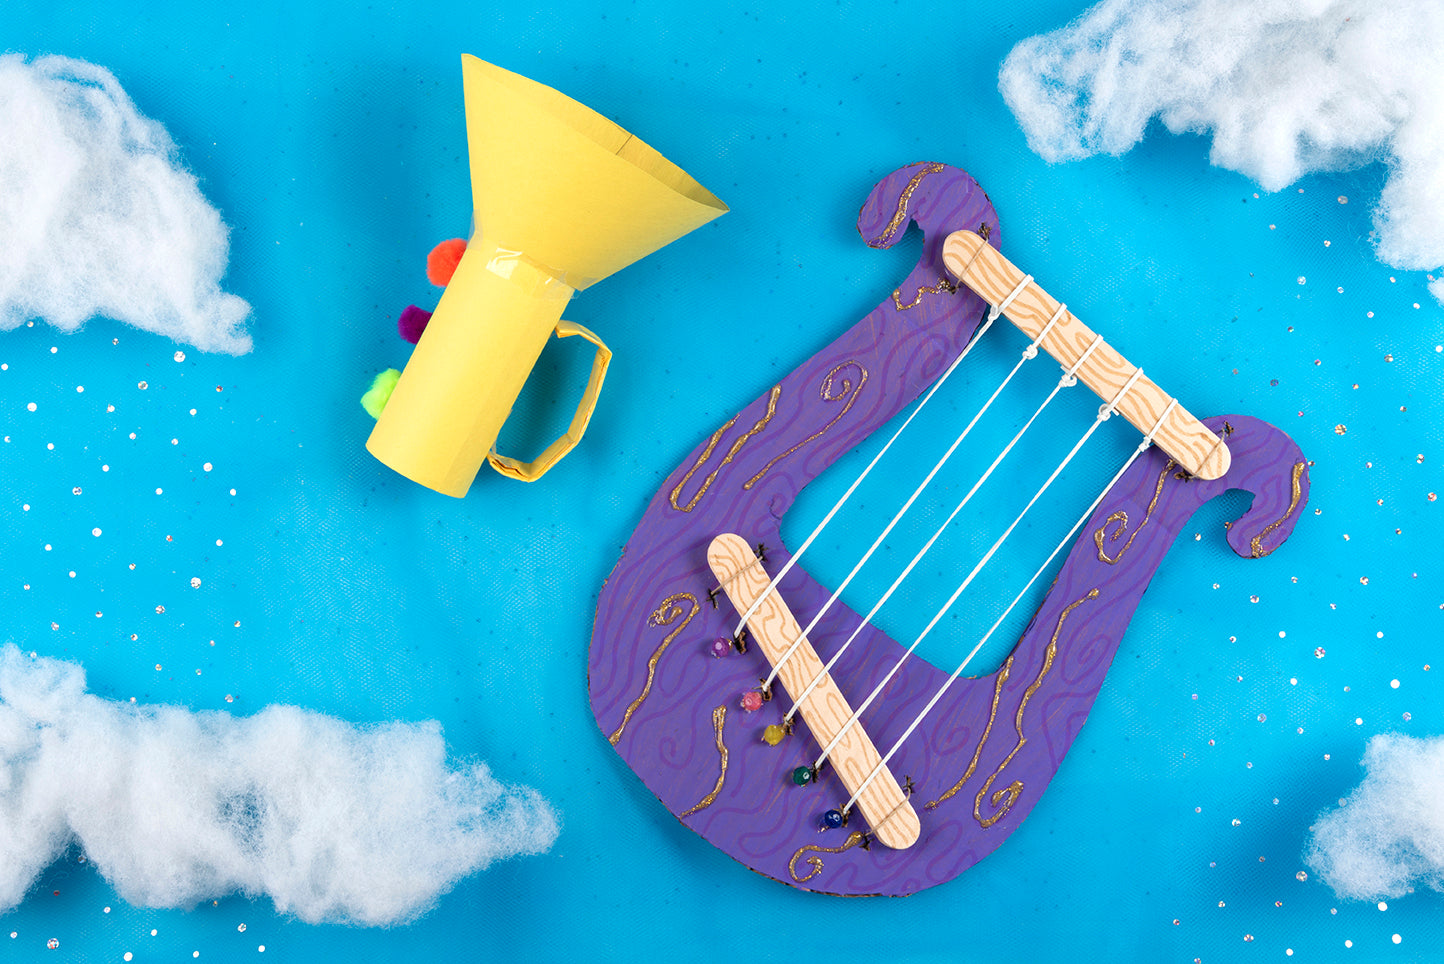 Kid's Bible craft praise instruments against a blue sky background with clouds and glitter rain